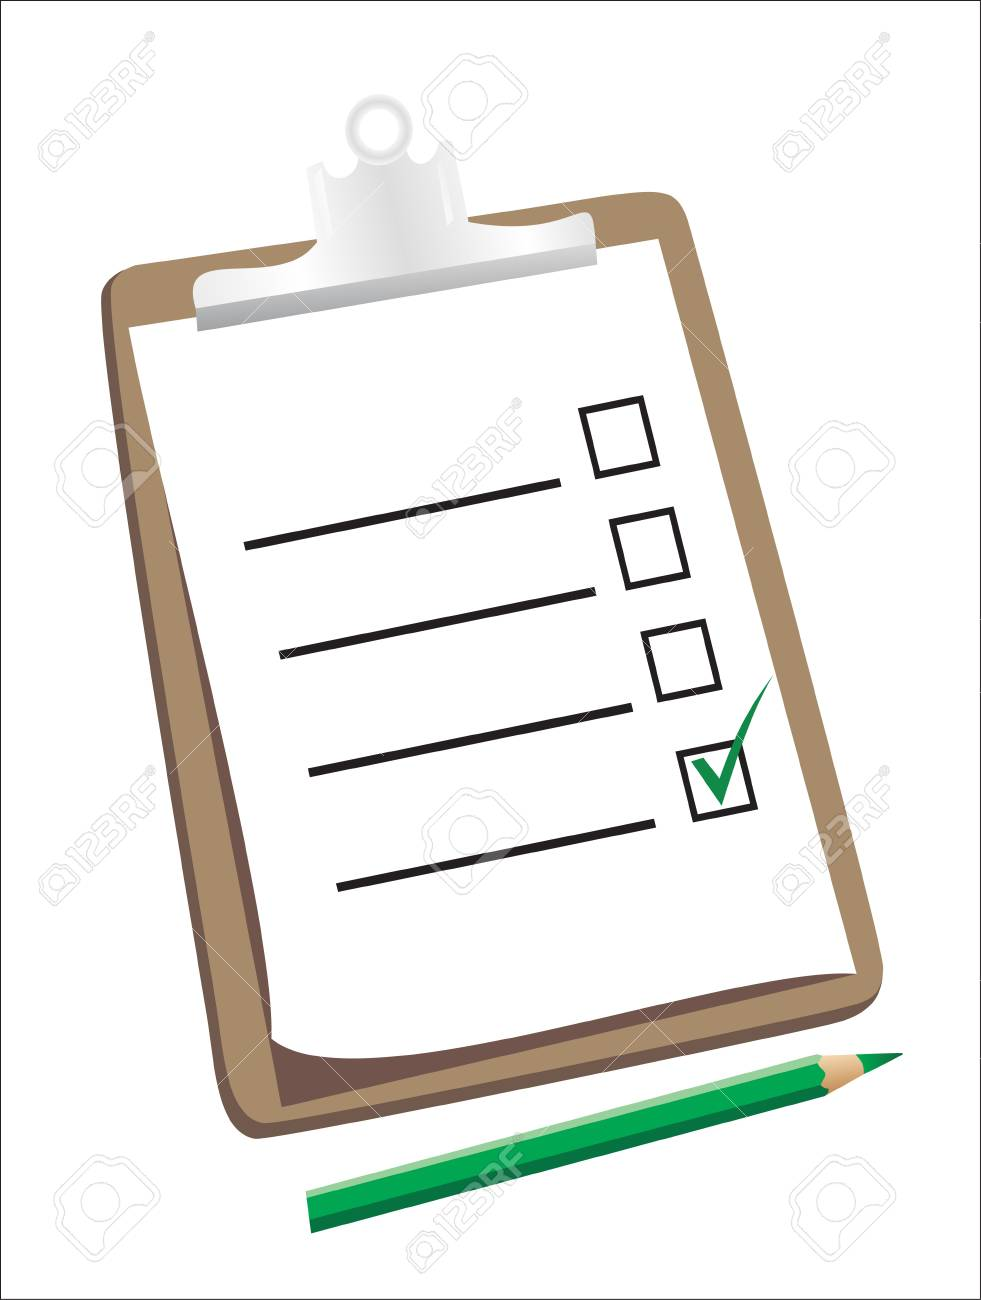 A wooden clipboard holding a ticked checklist and a pencil Stock Vector - 18438567